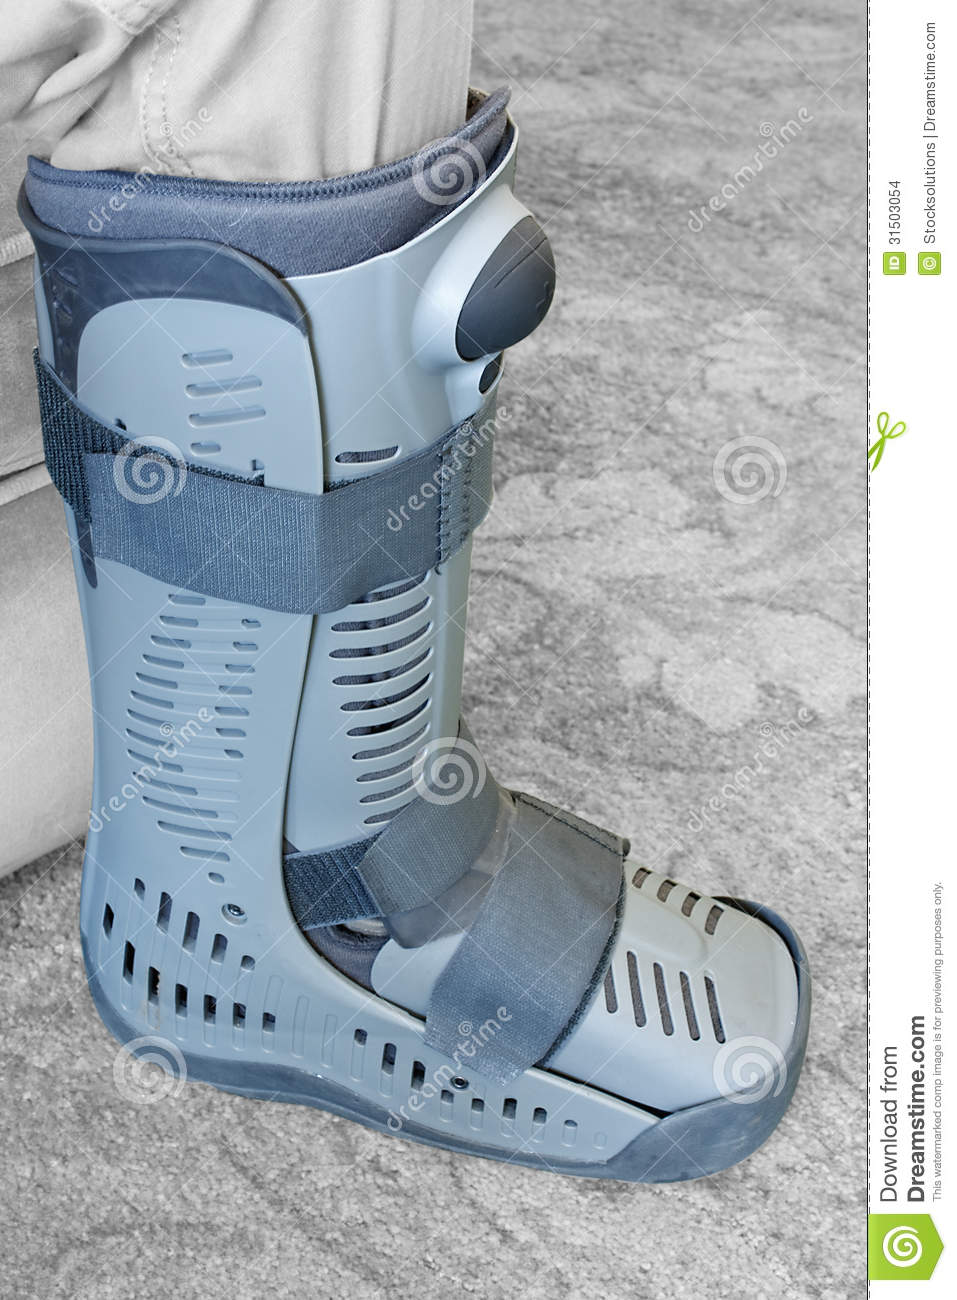 Compression Boot Or Soft Cast Footwear Stock Images